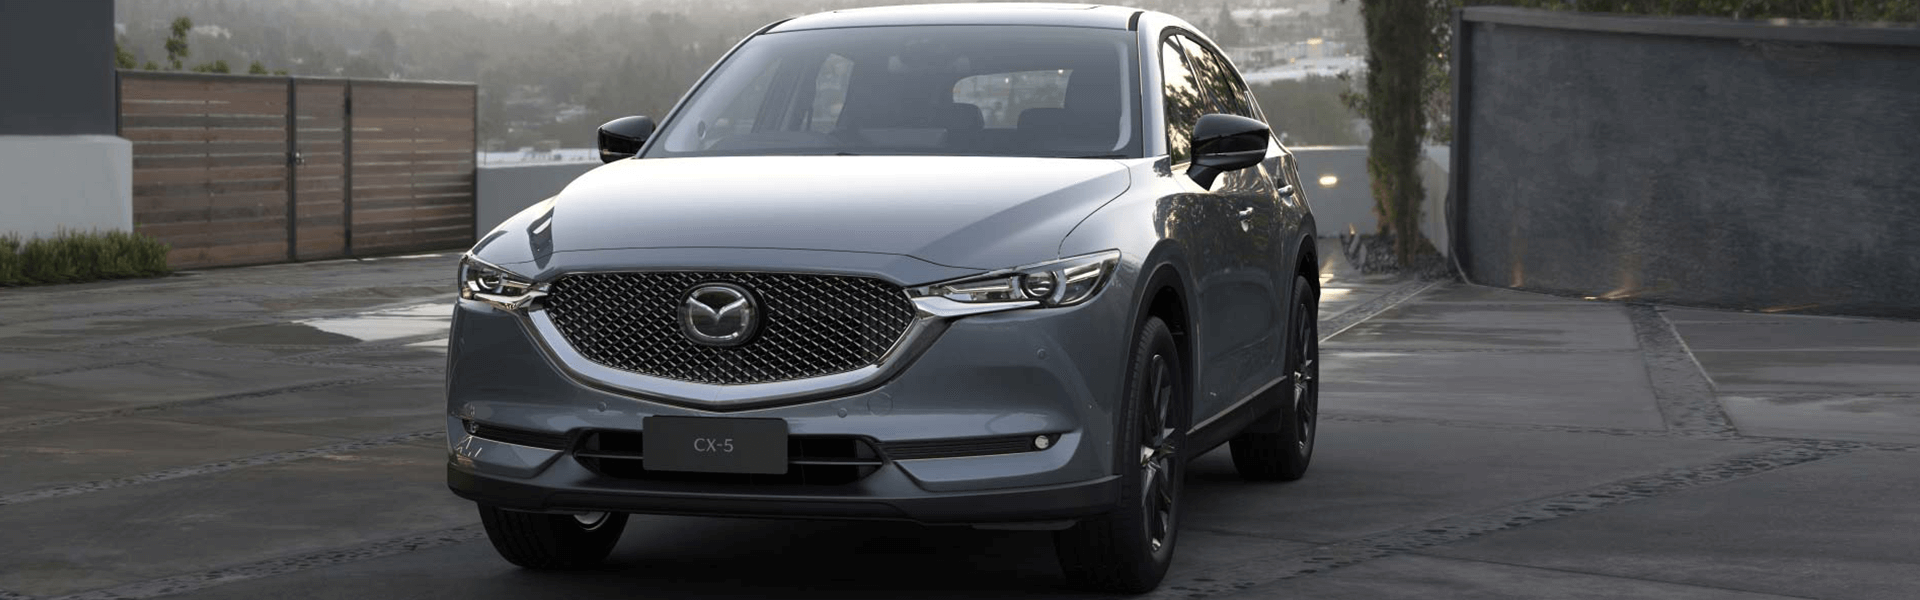 CX-5 INNOVATION THAT RAISES THE BAR